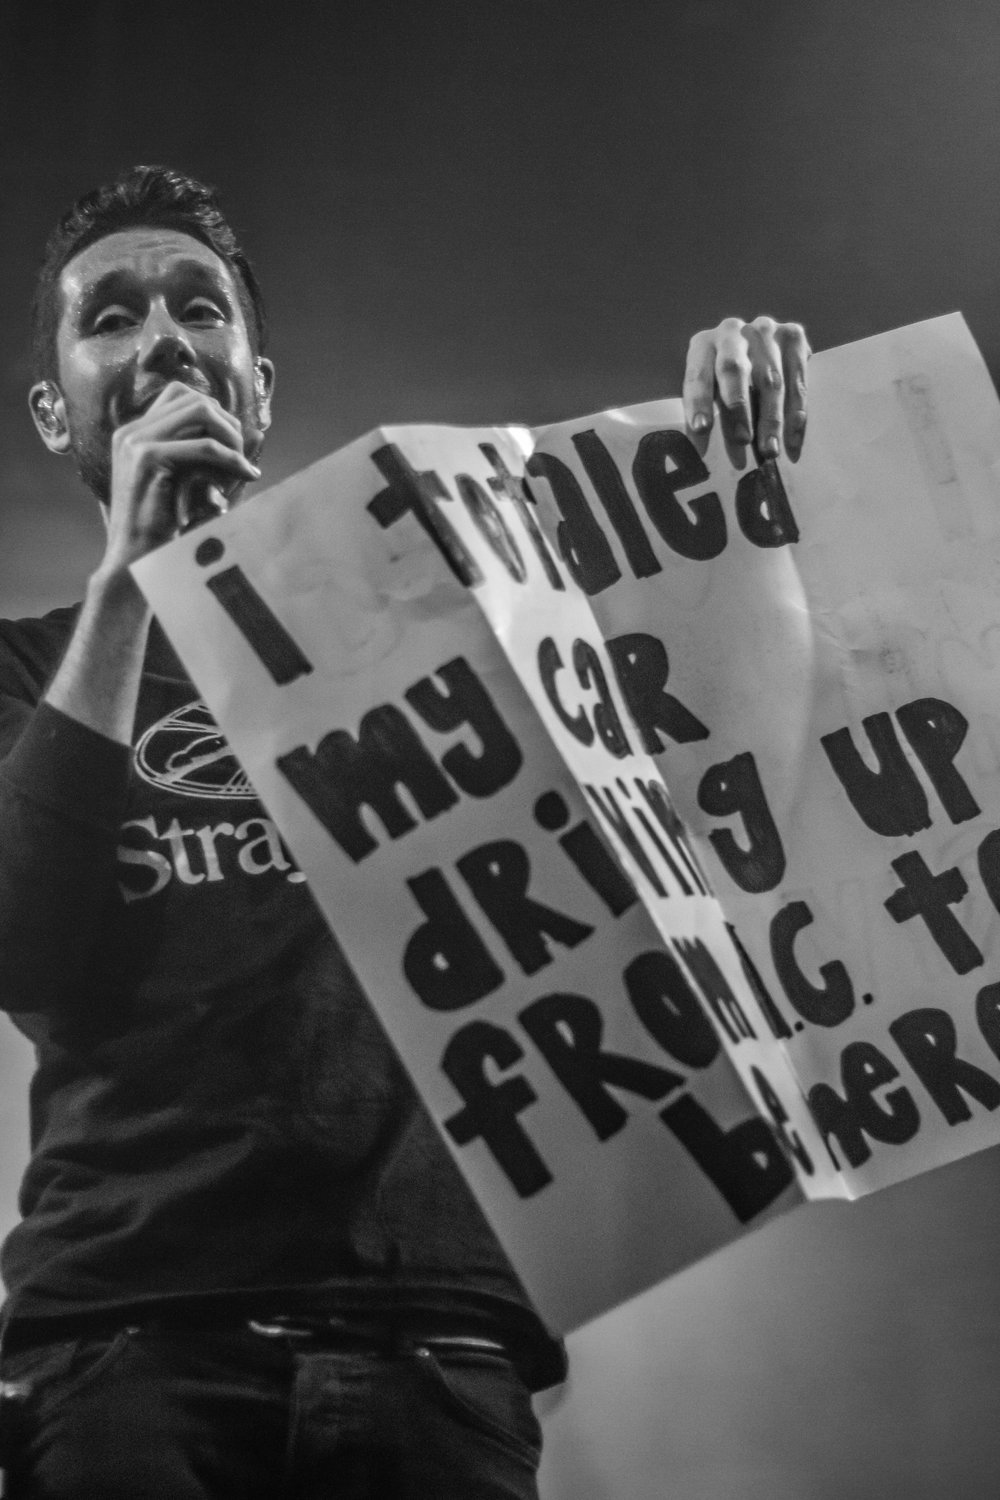 Frontman Dan Smith and the infamous sign